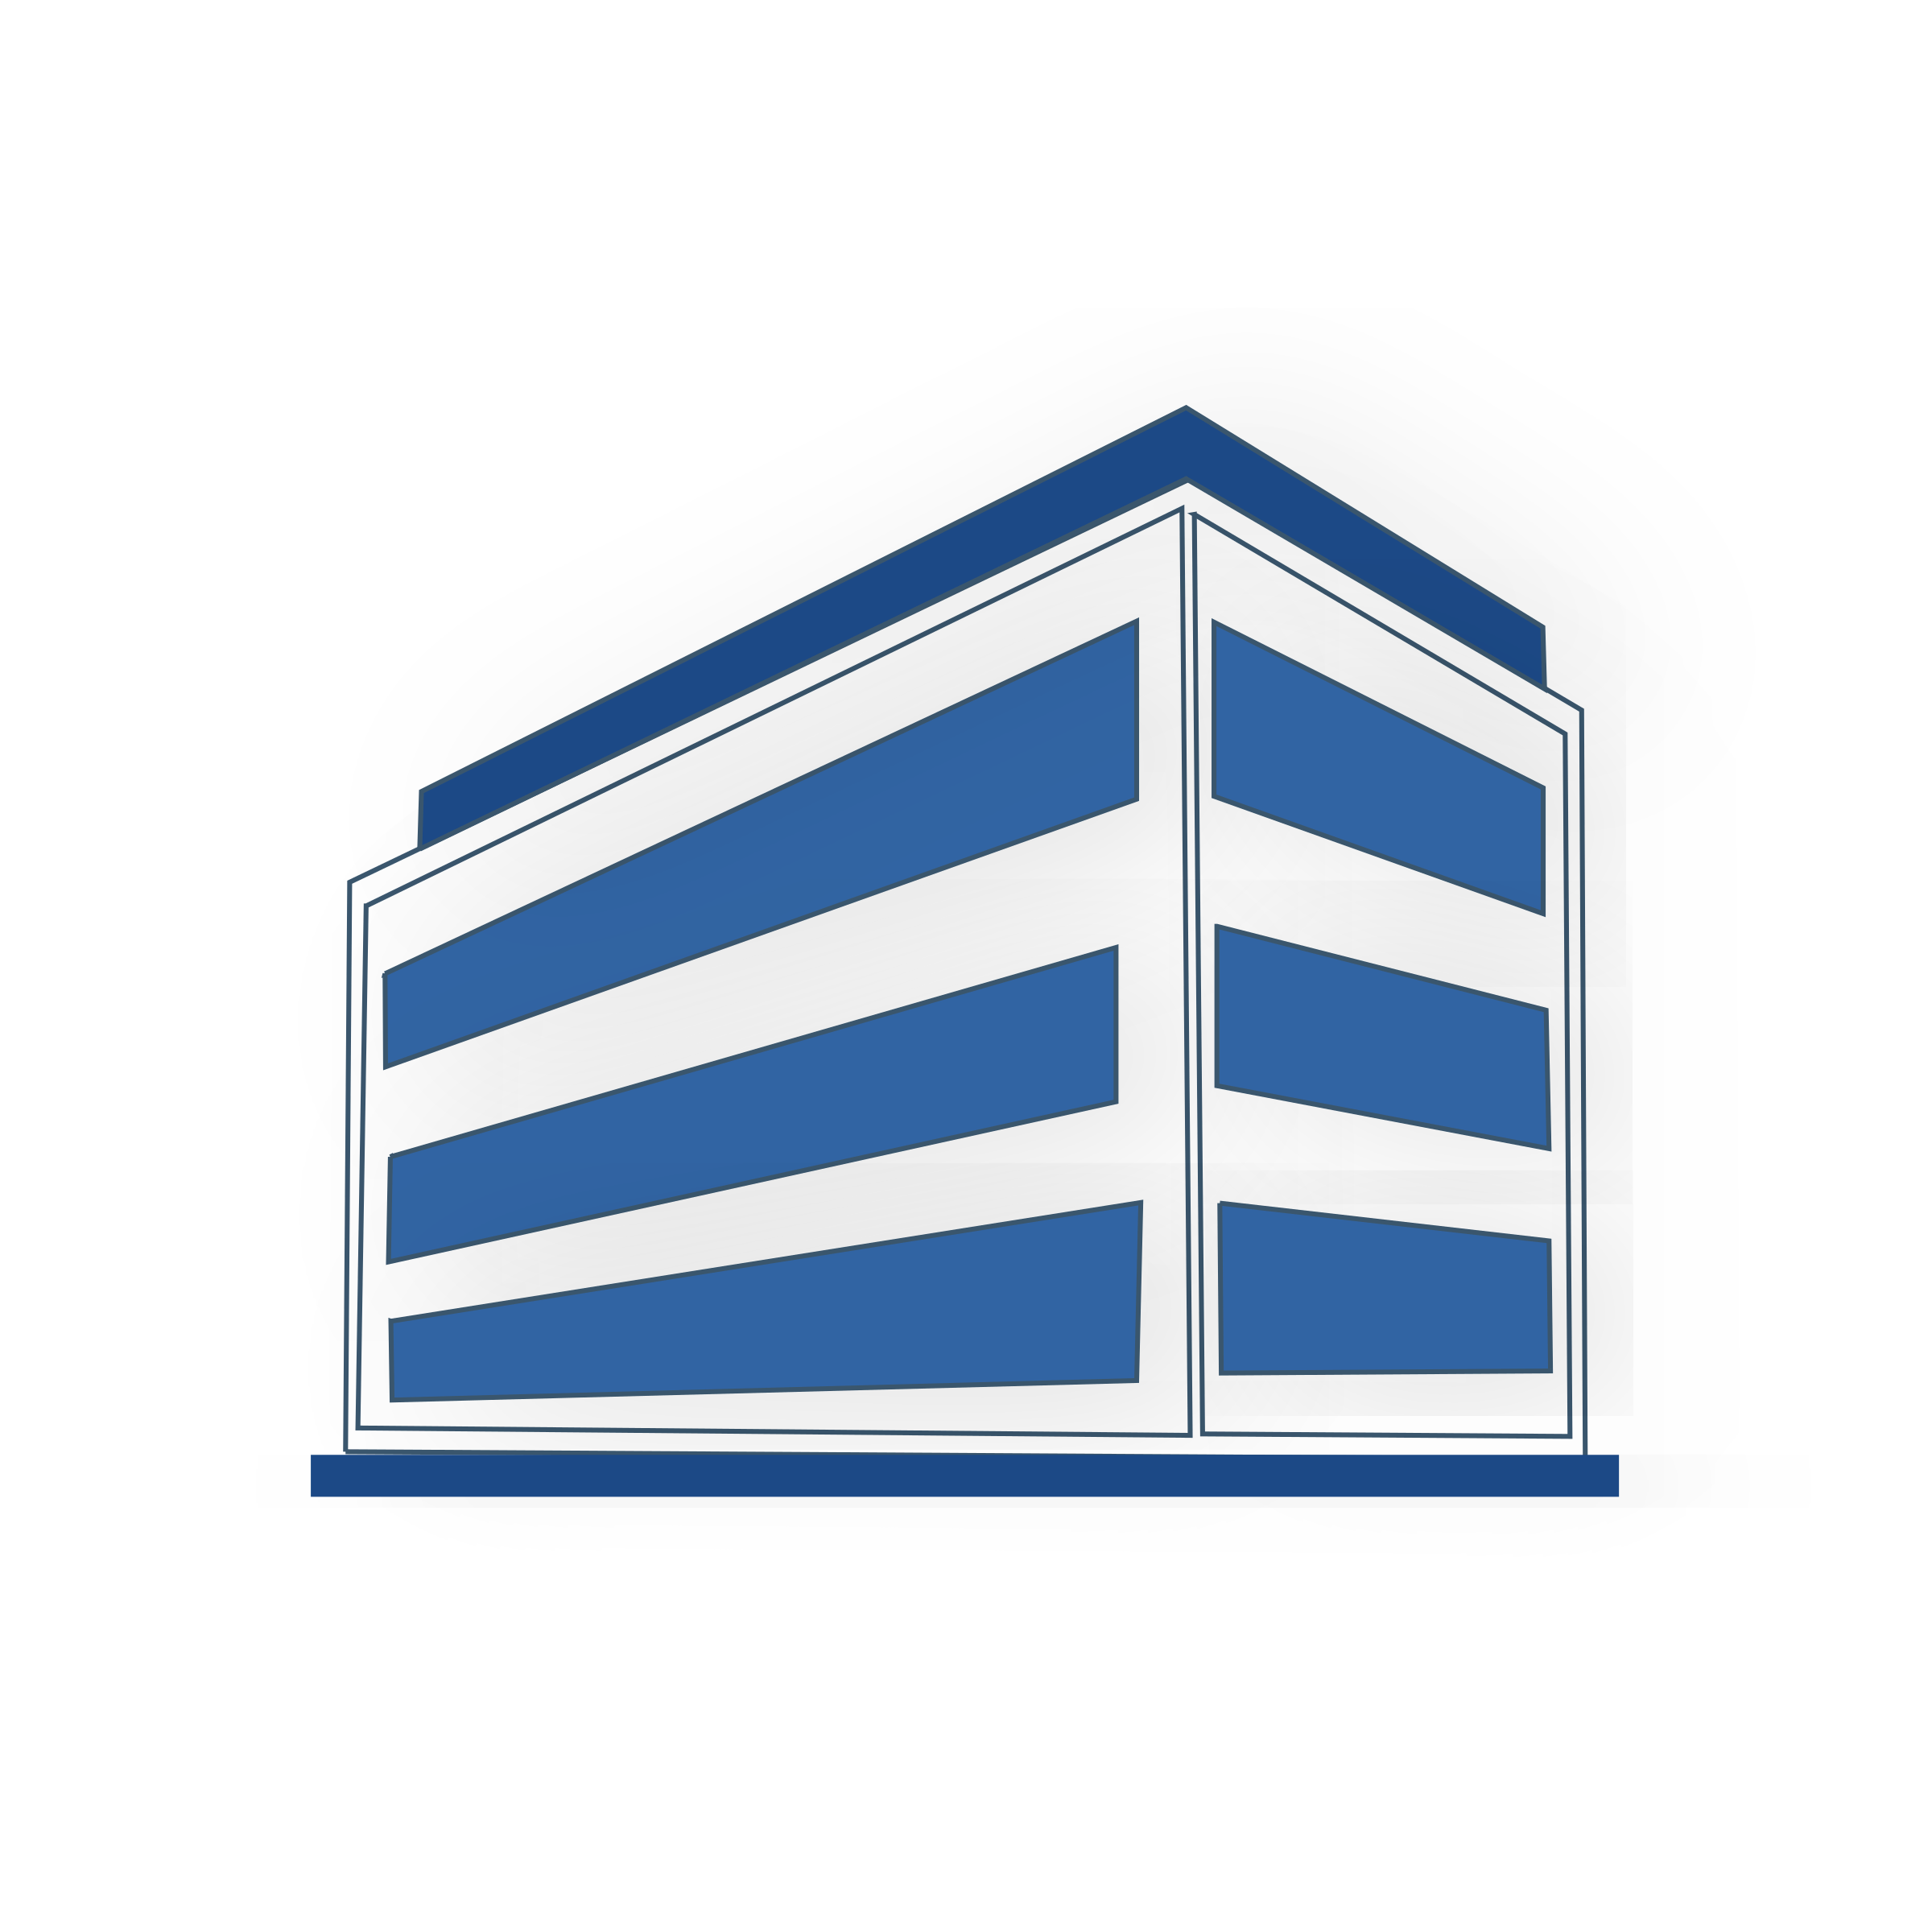 Clipart - buildings2-icon-64x64